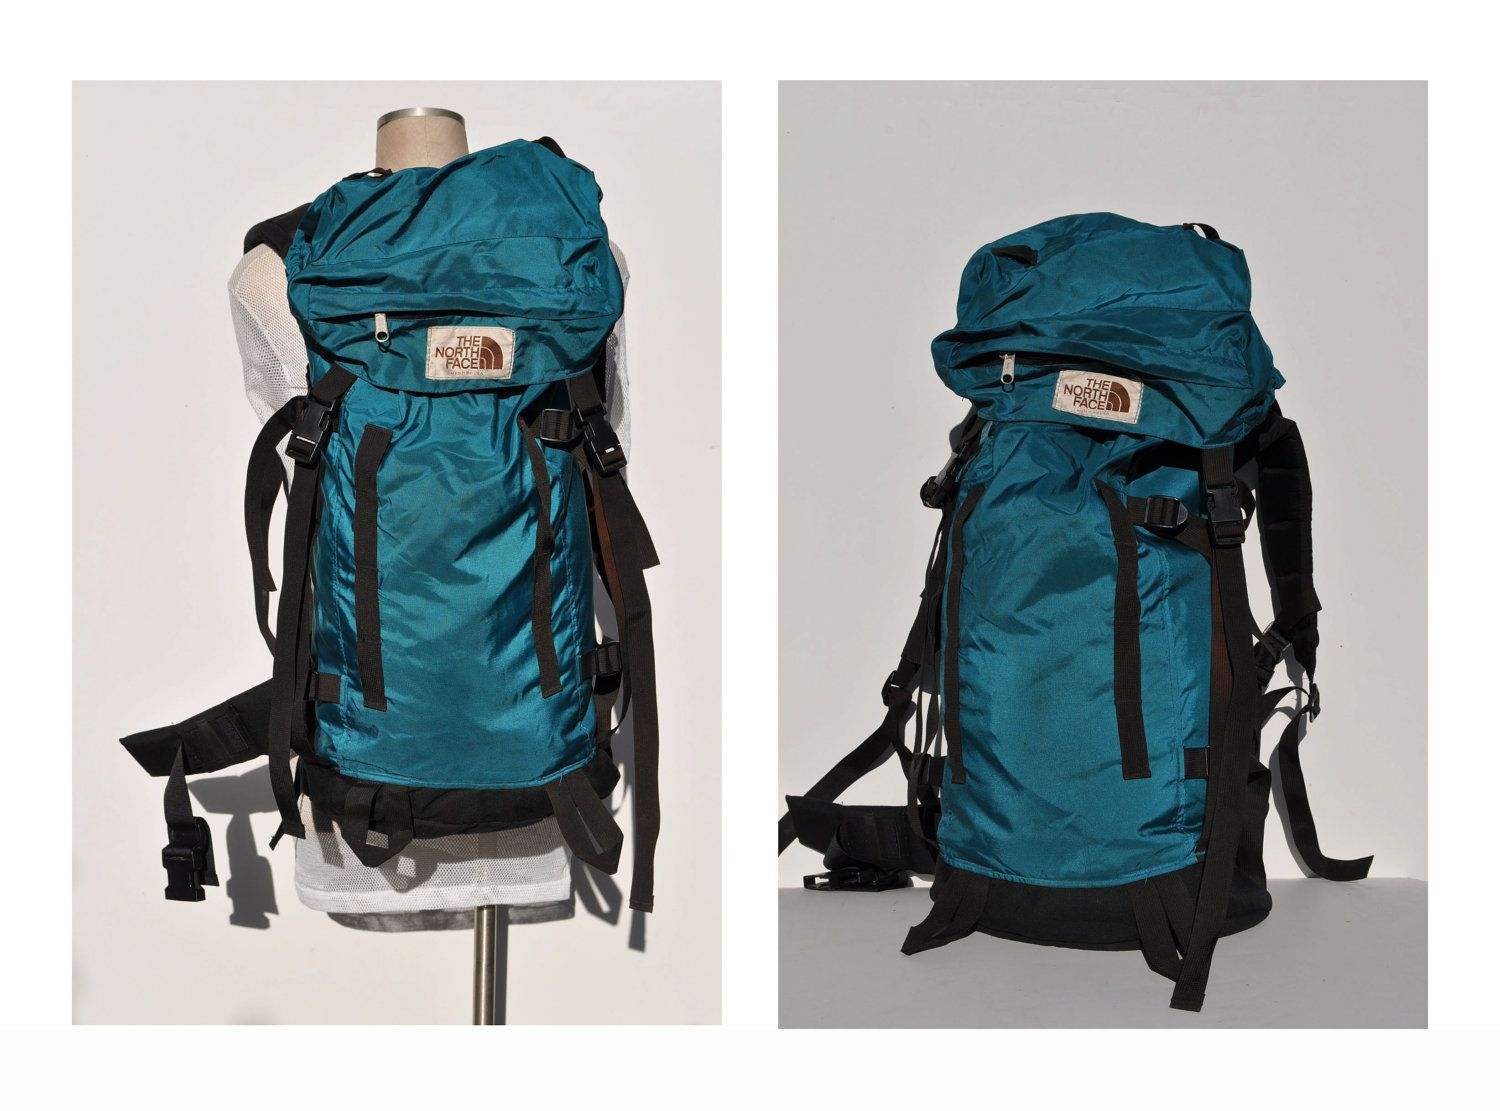 THE NORTH FACE vintage backpack daypack back pack day by andyhaul